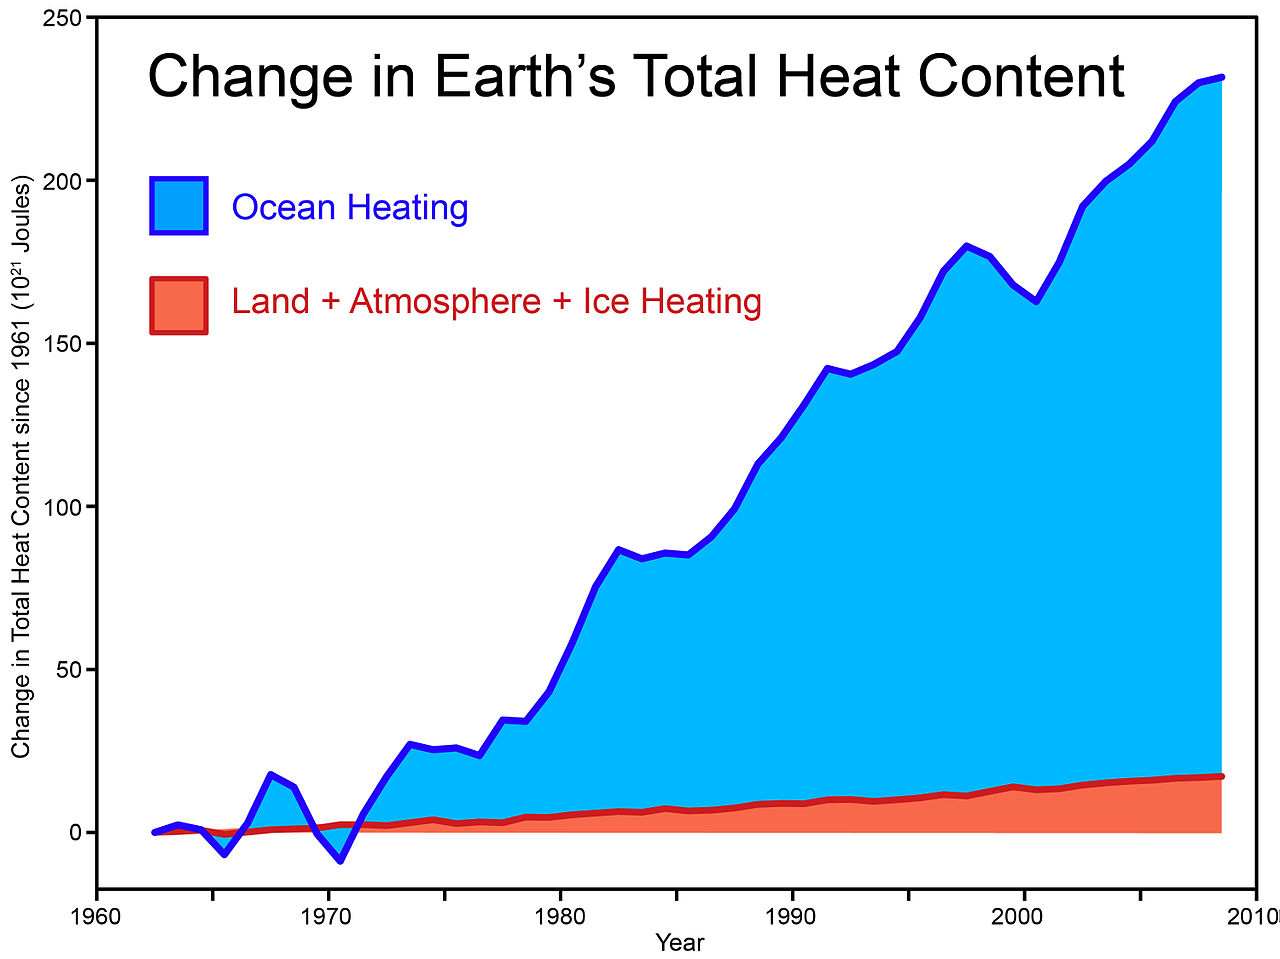 Church Organizational Chart: Global warming - change in total heat content of earth.jpg ,Chart